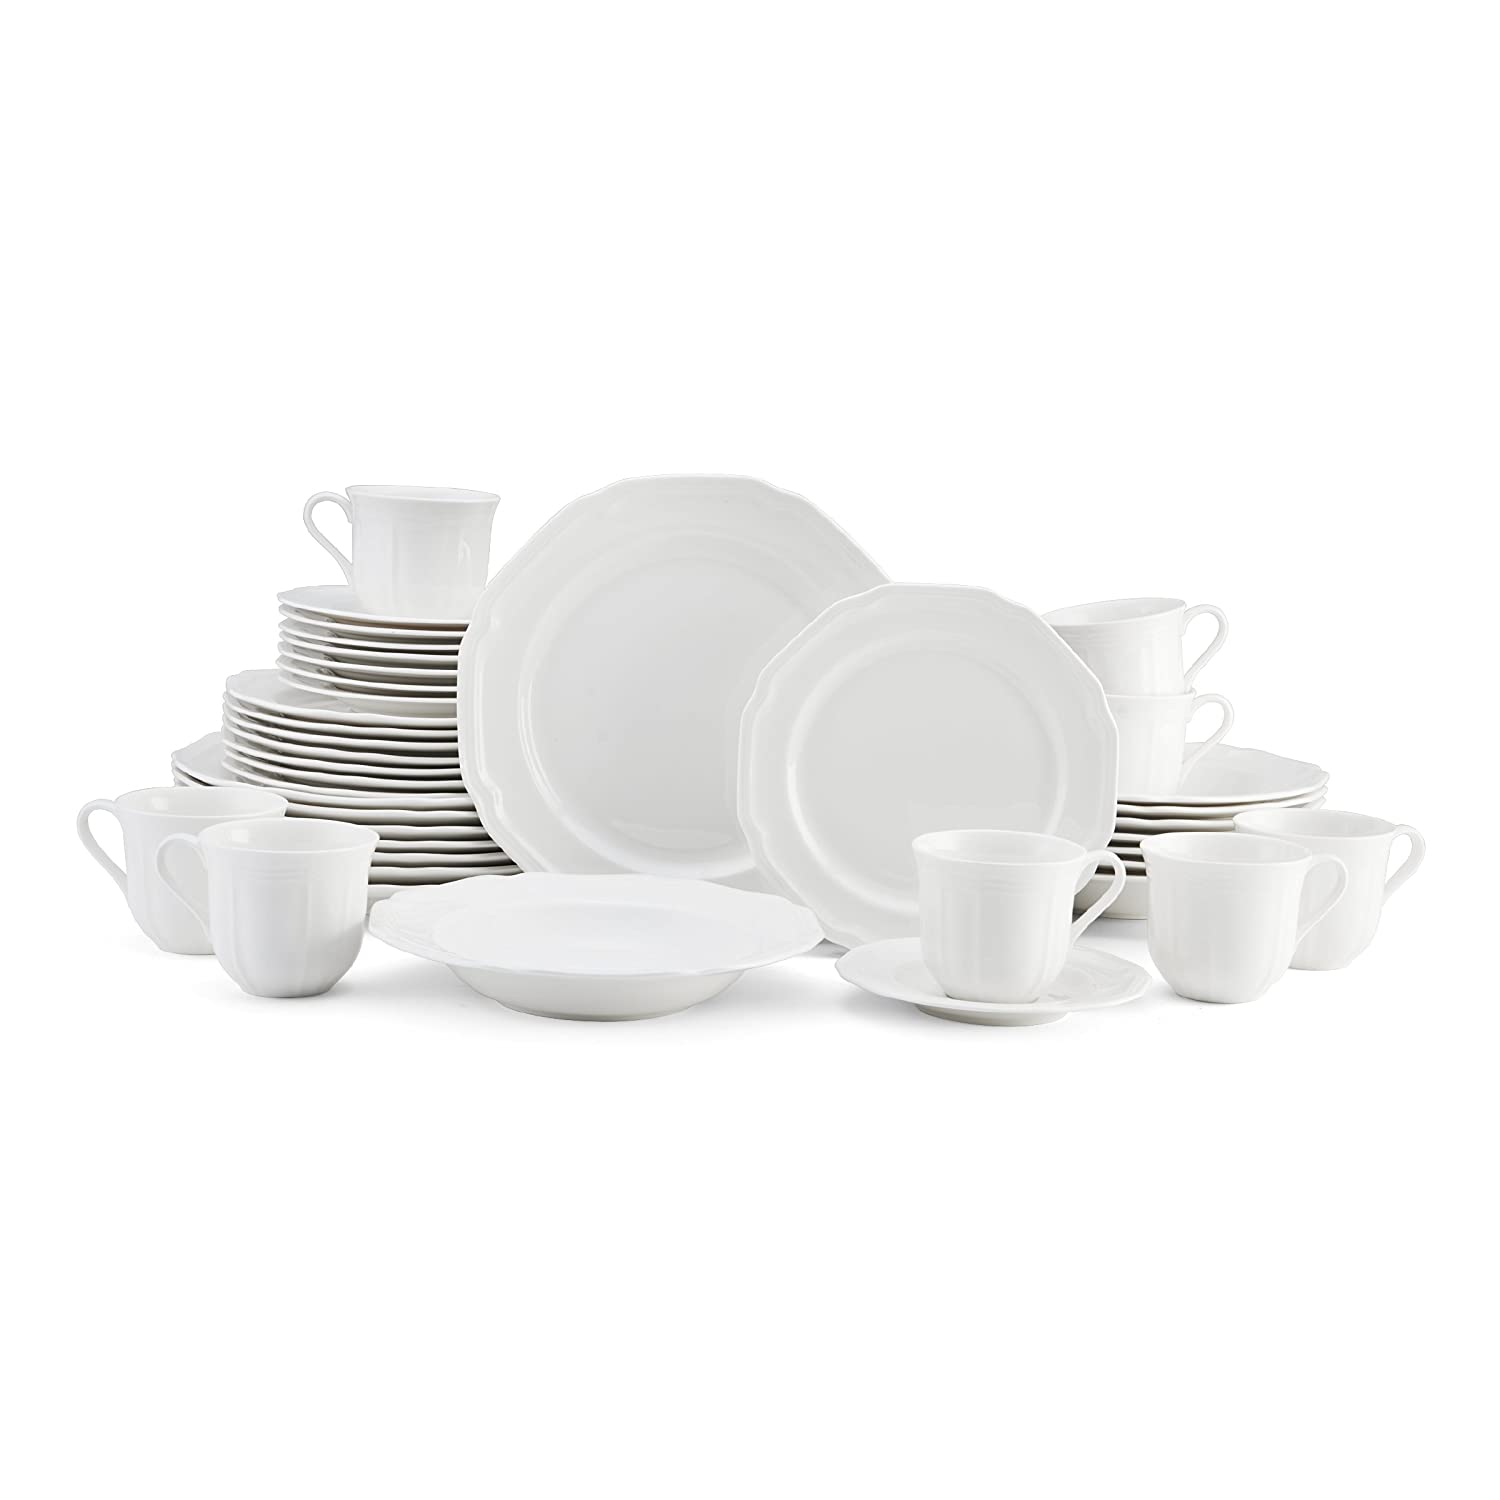 Mikasa Antique White 40-Piece Porcelain Dinnerware Set Service for 8 | ChristmasTablescapeDecor.com